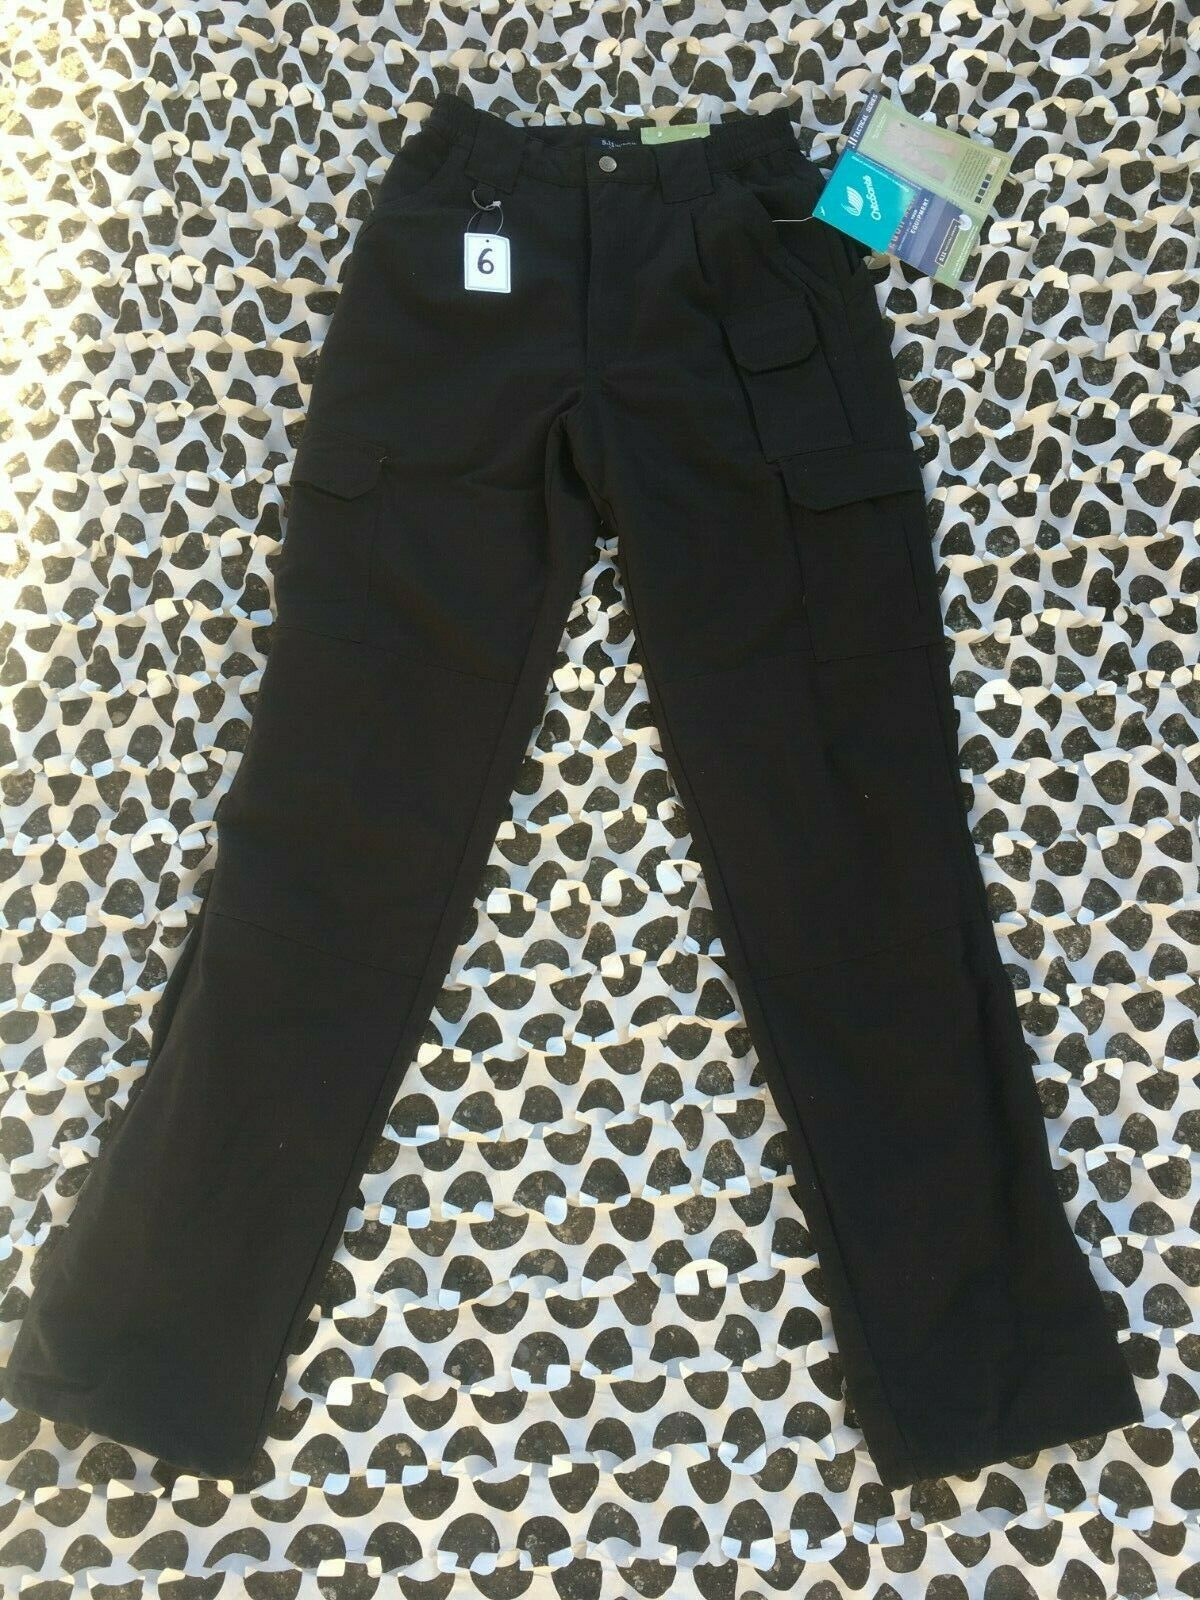 Pantalon black tactique 5.11 tactical size 36 fr armé américaine